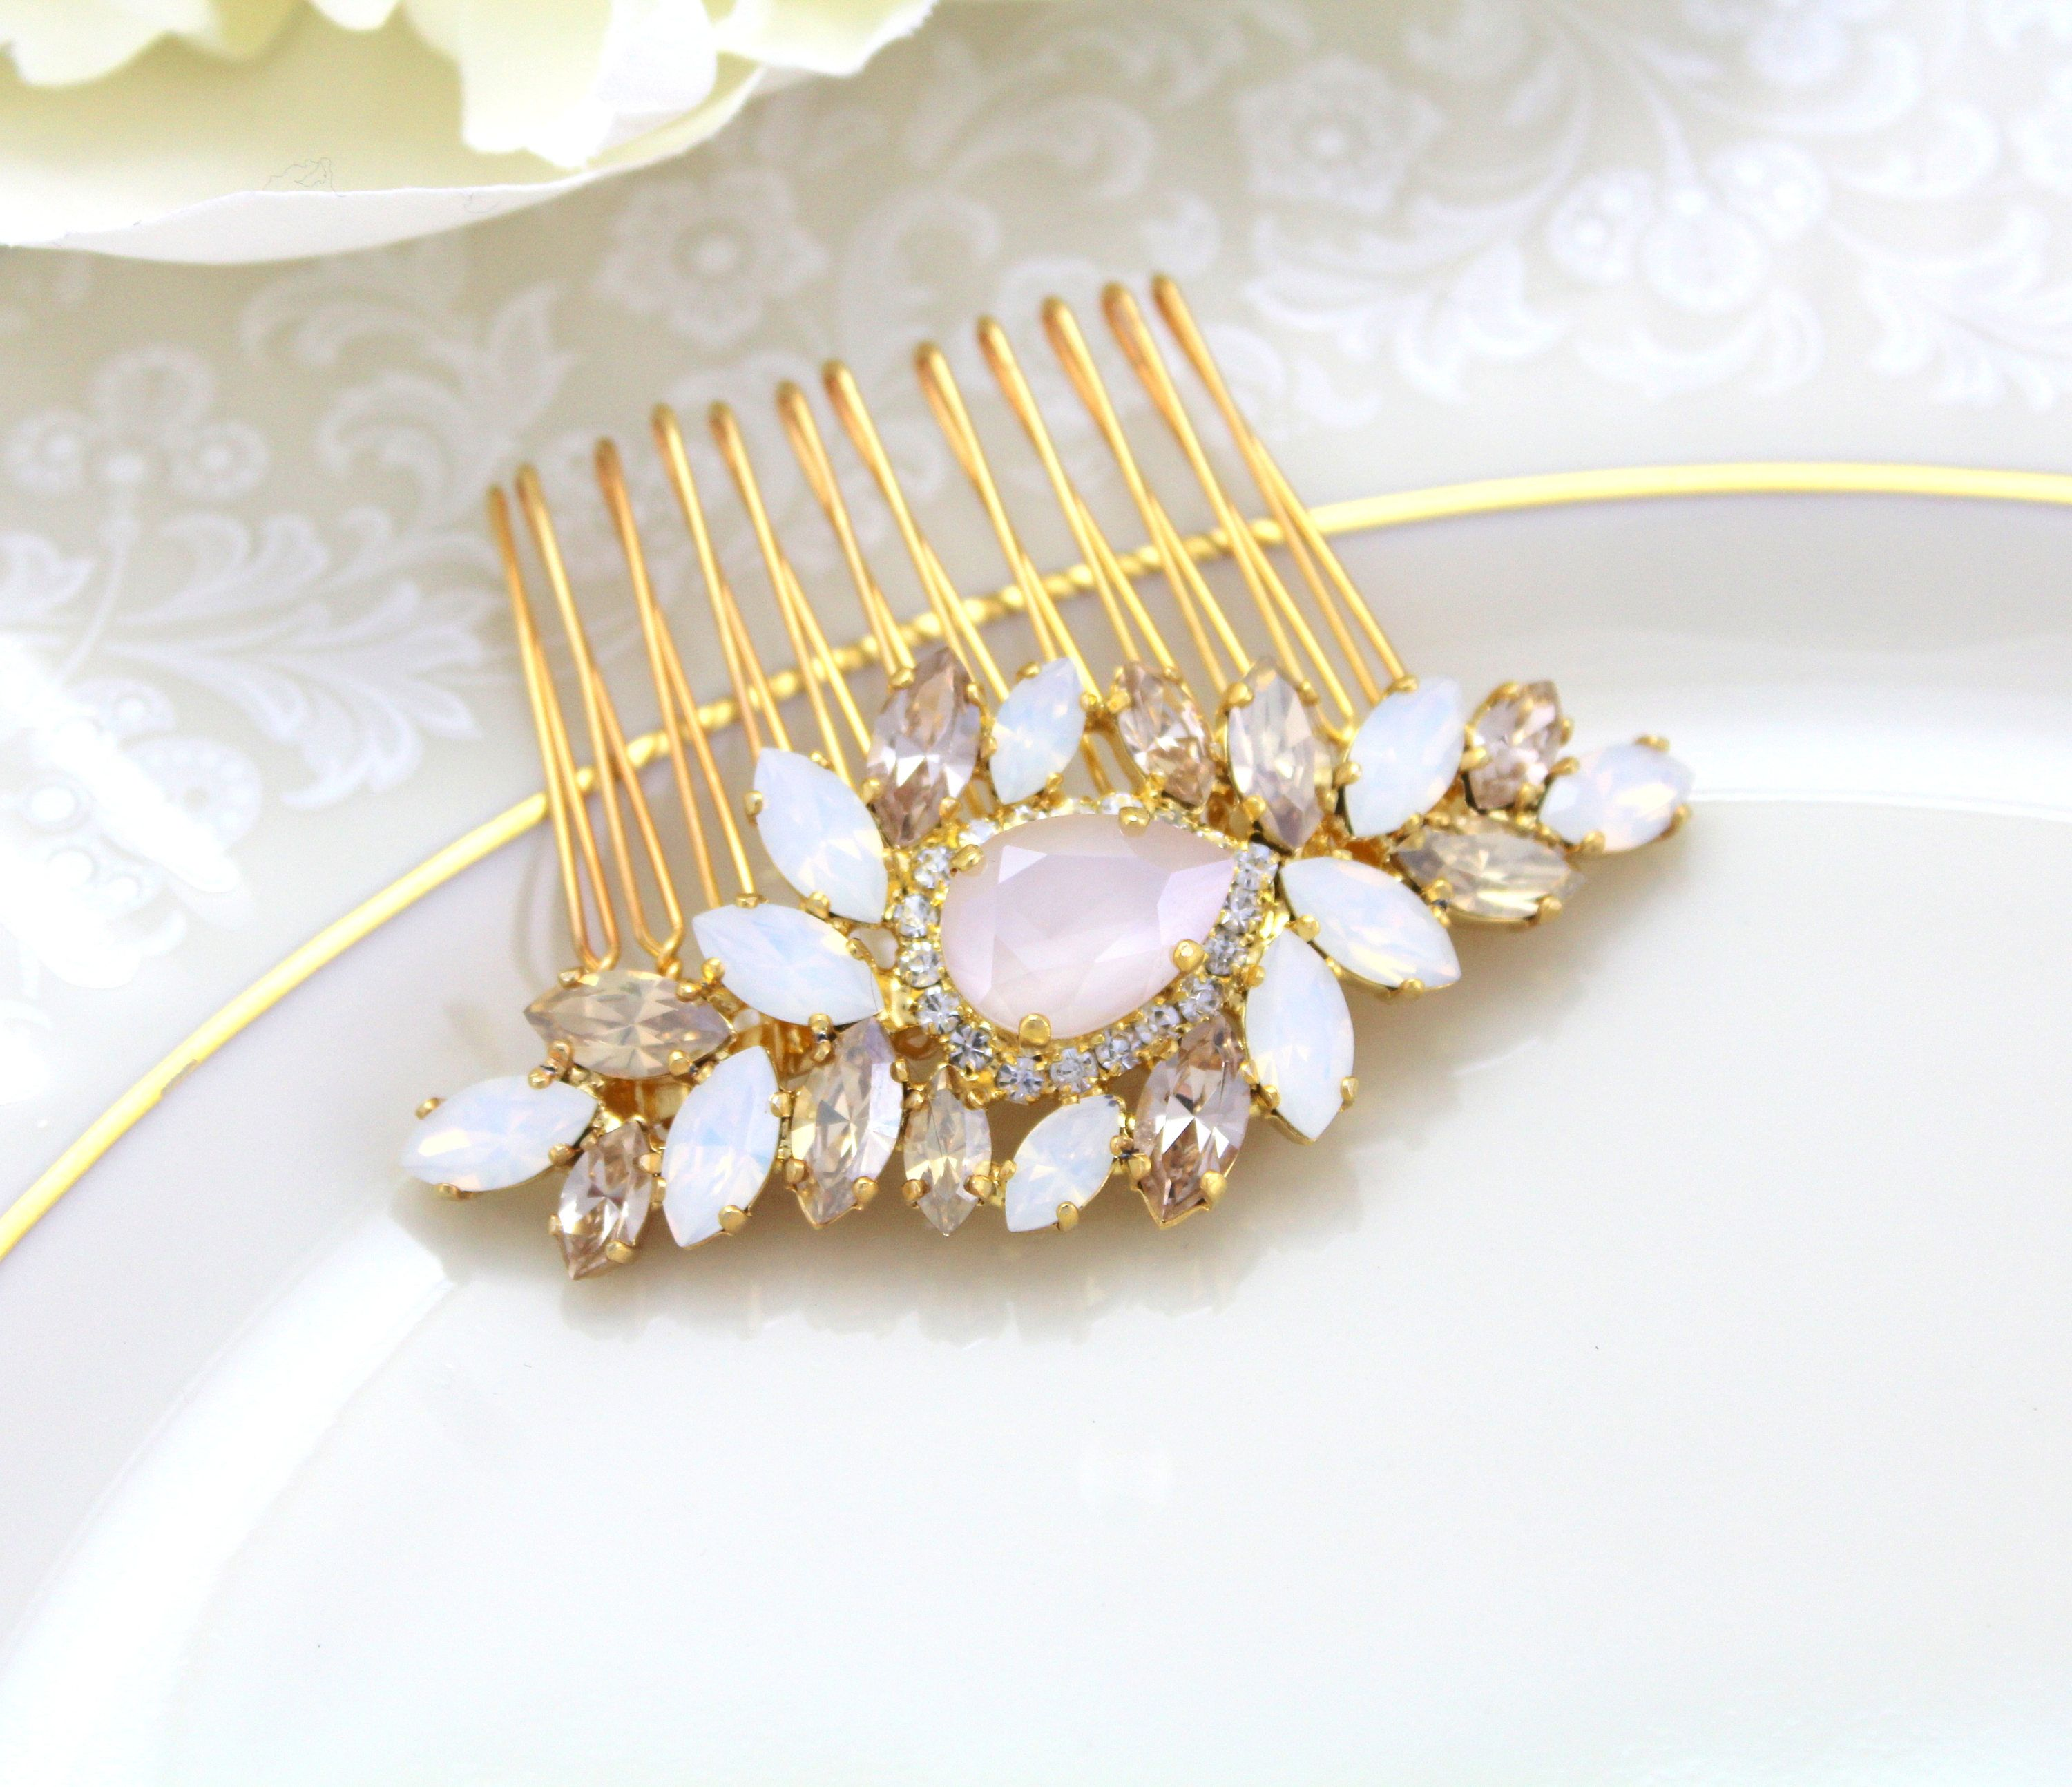 da9d69bec Gold hair comb, Bridal hair comb, Wedding hair accessories, White opal hair  comb, Hair jewelry, Swarovski crystal, Ivory cream Golden shadow by ...